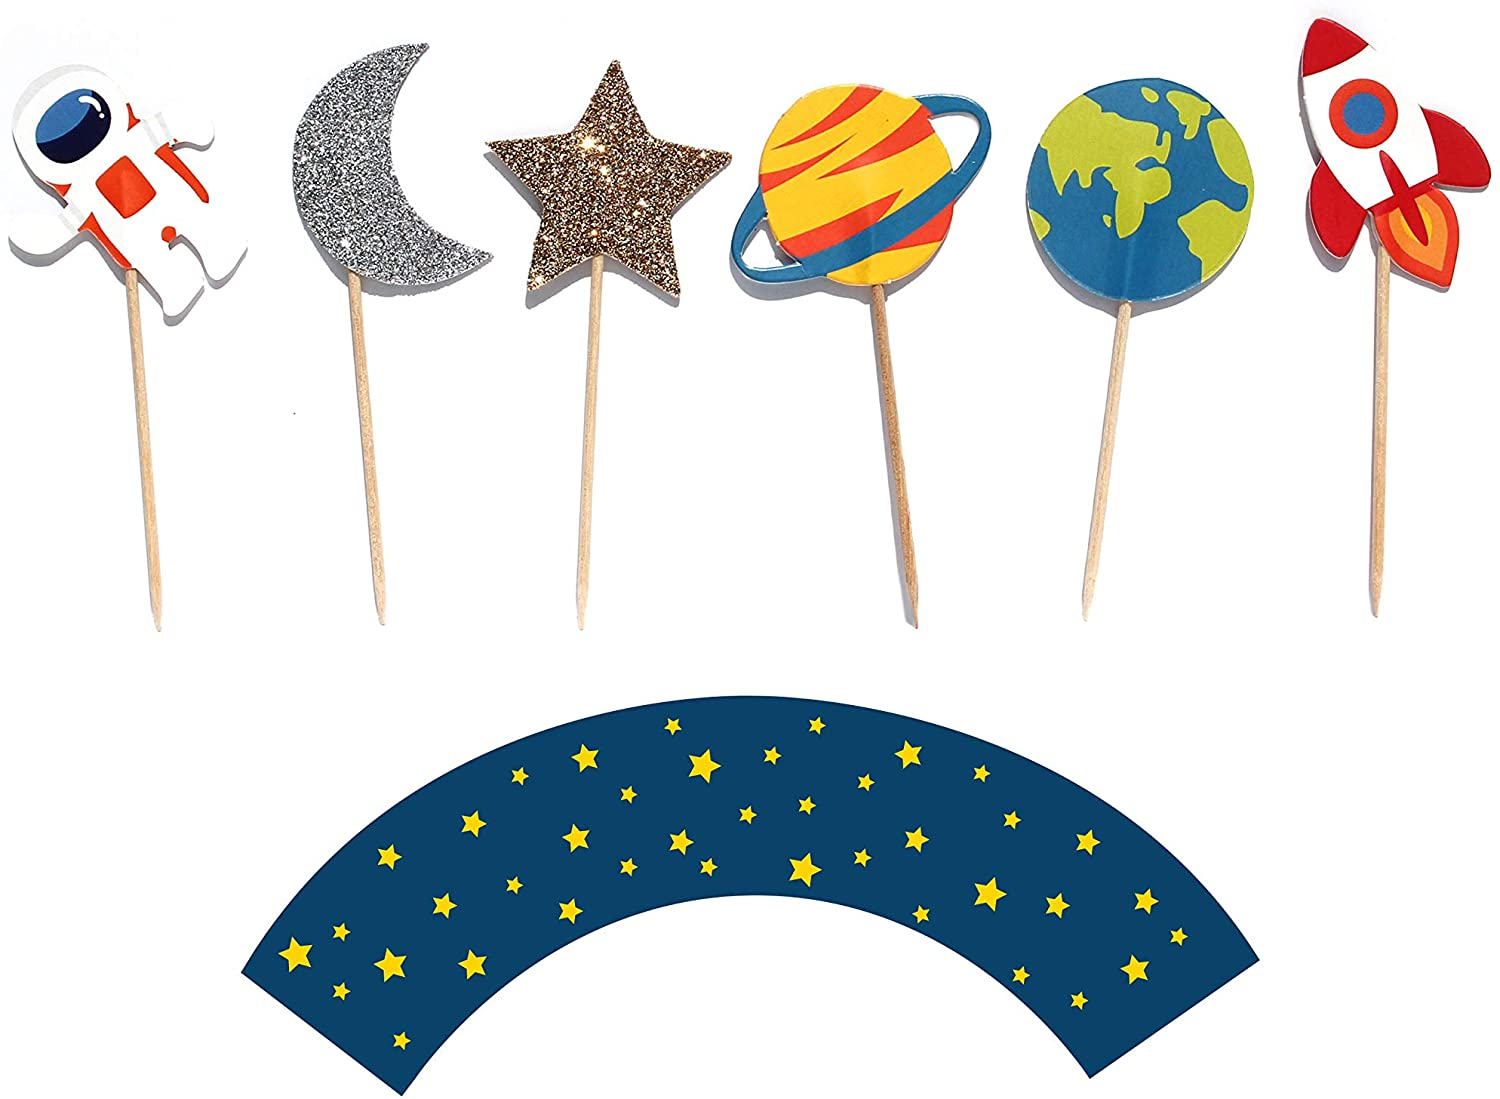 The man Happy Birthday Cake Topper Space Theme Cake Topper Silver Glitter Birthday boy girl baby Baby Shower Party DecorationBaby Shower Party Decoration